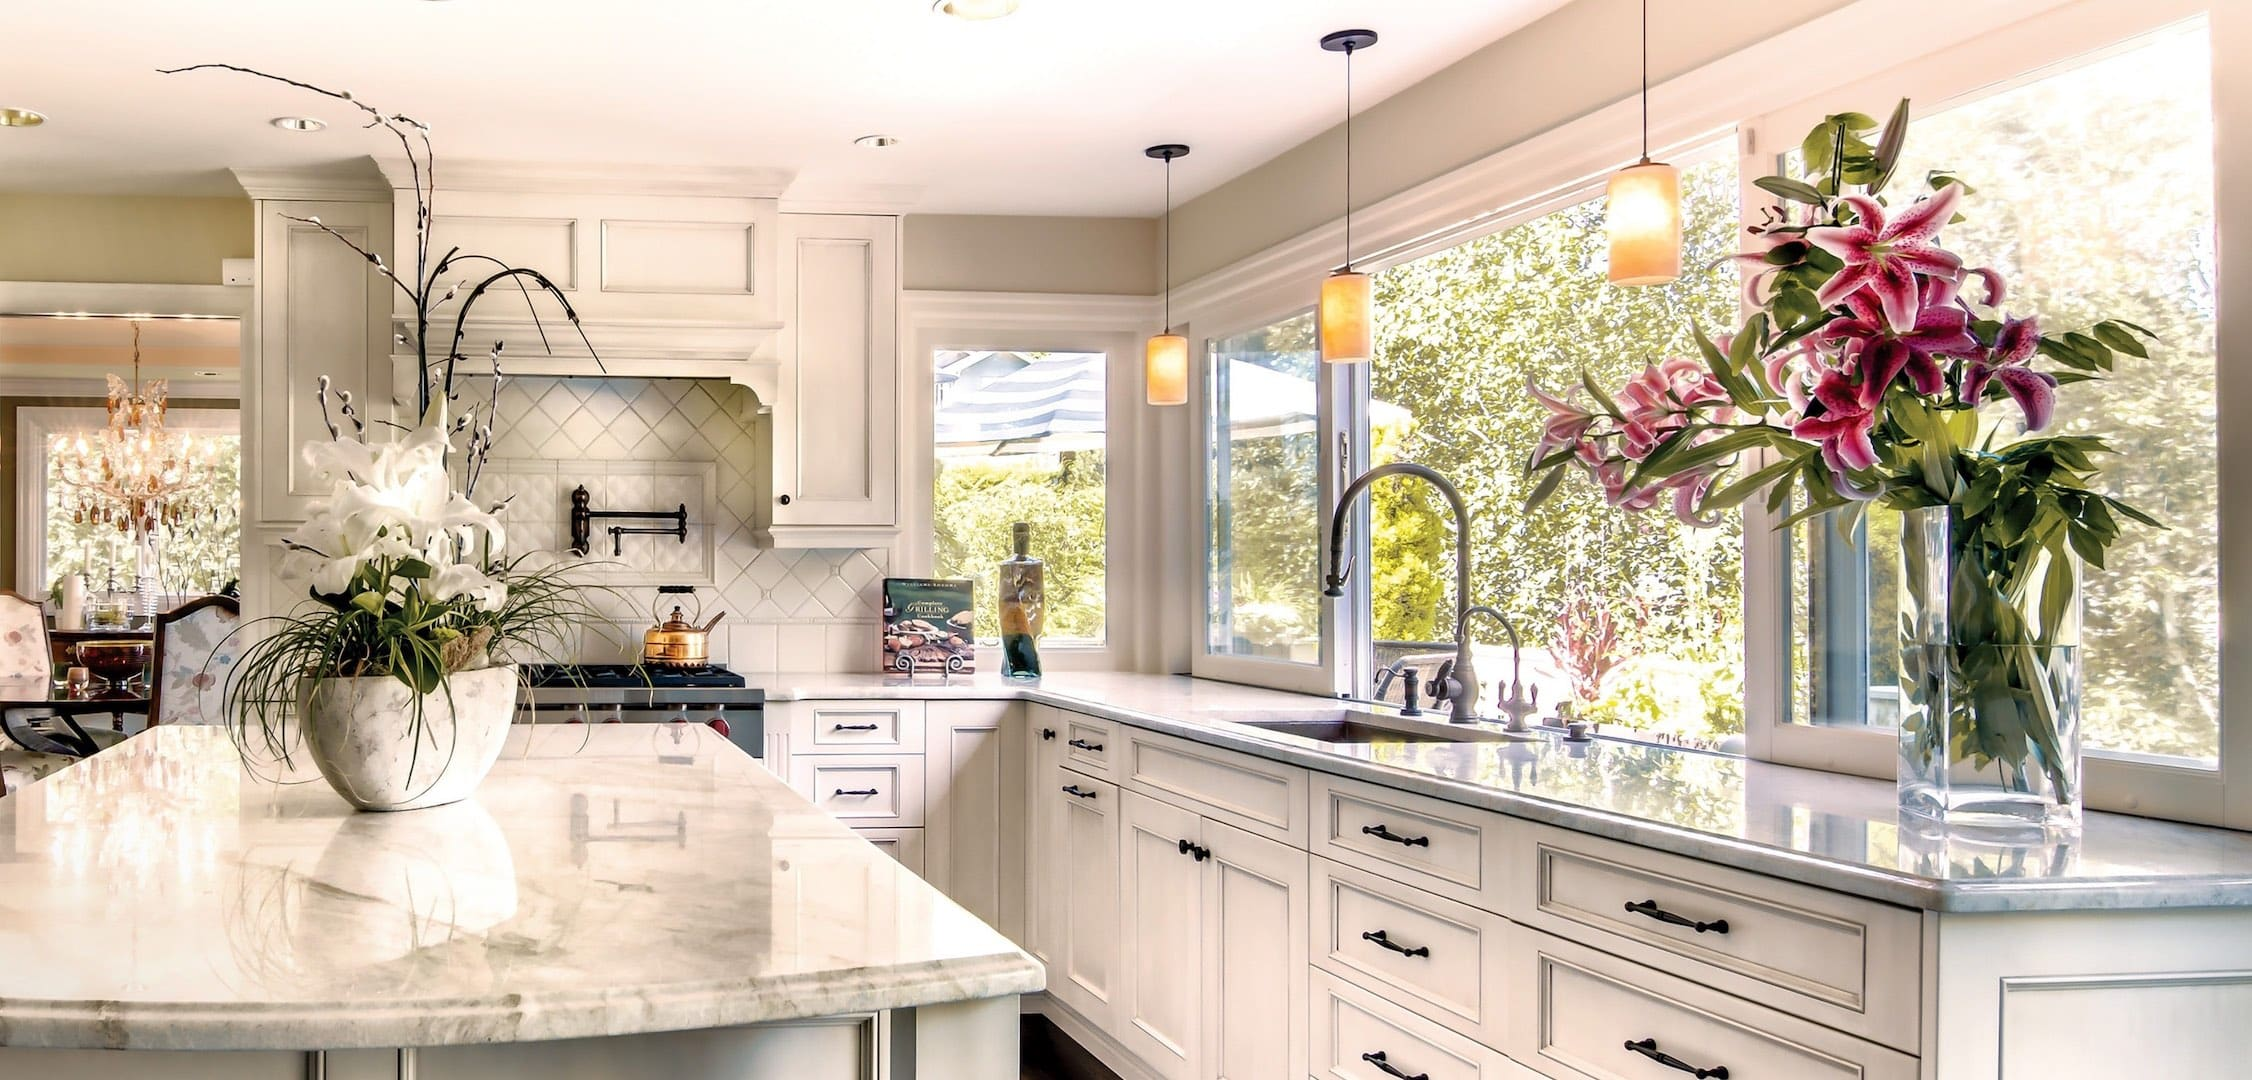 Kitchen Remodeling Inspiration for Your Next Project